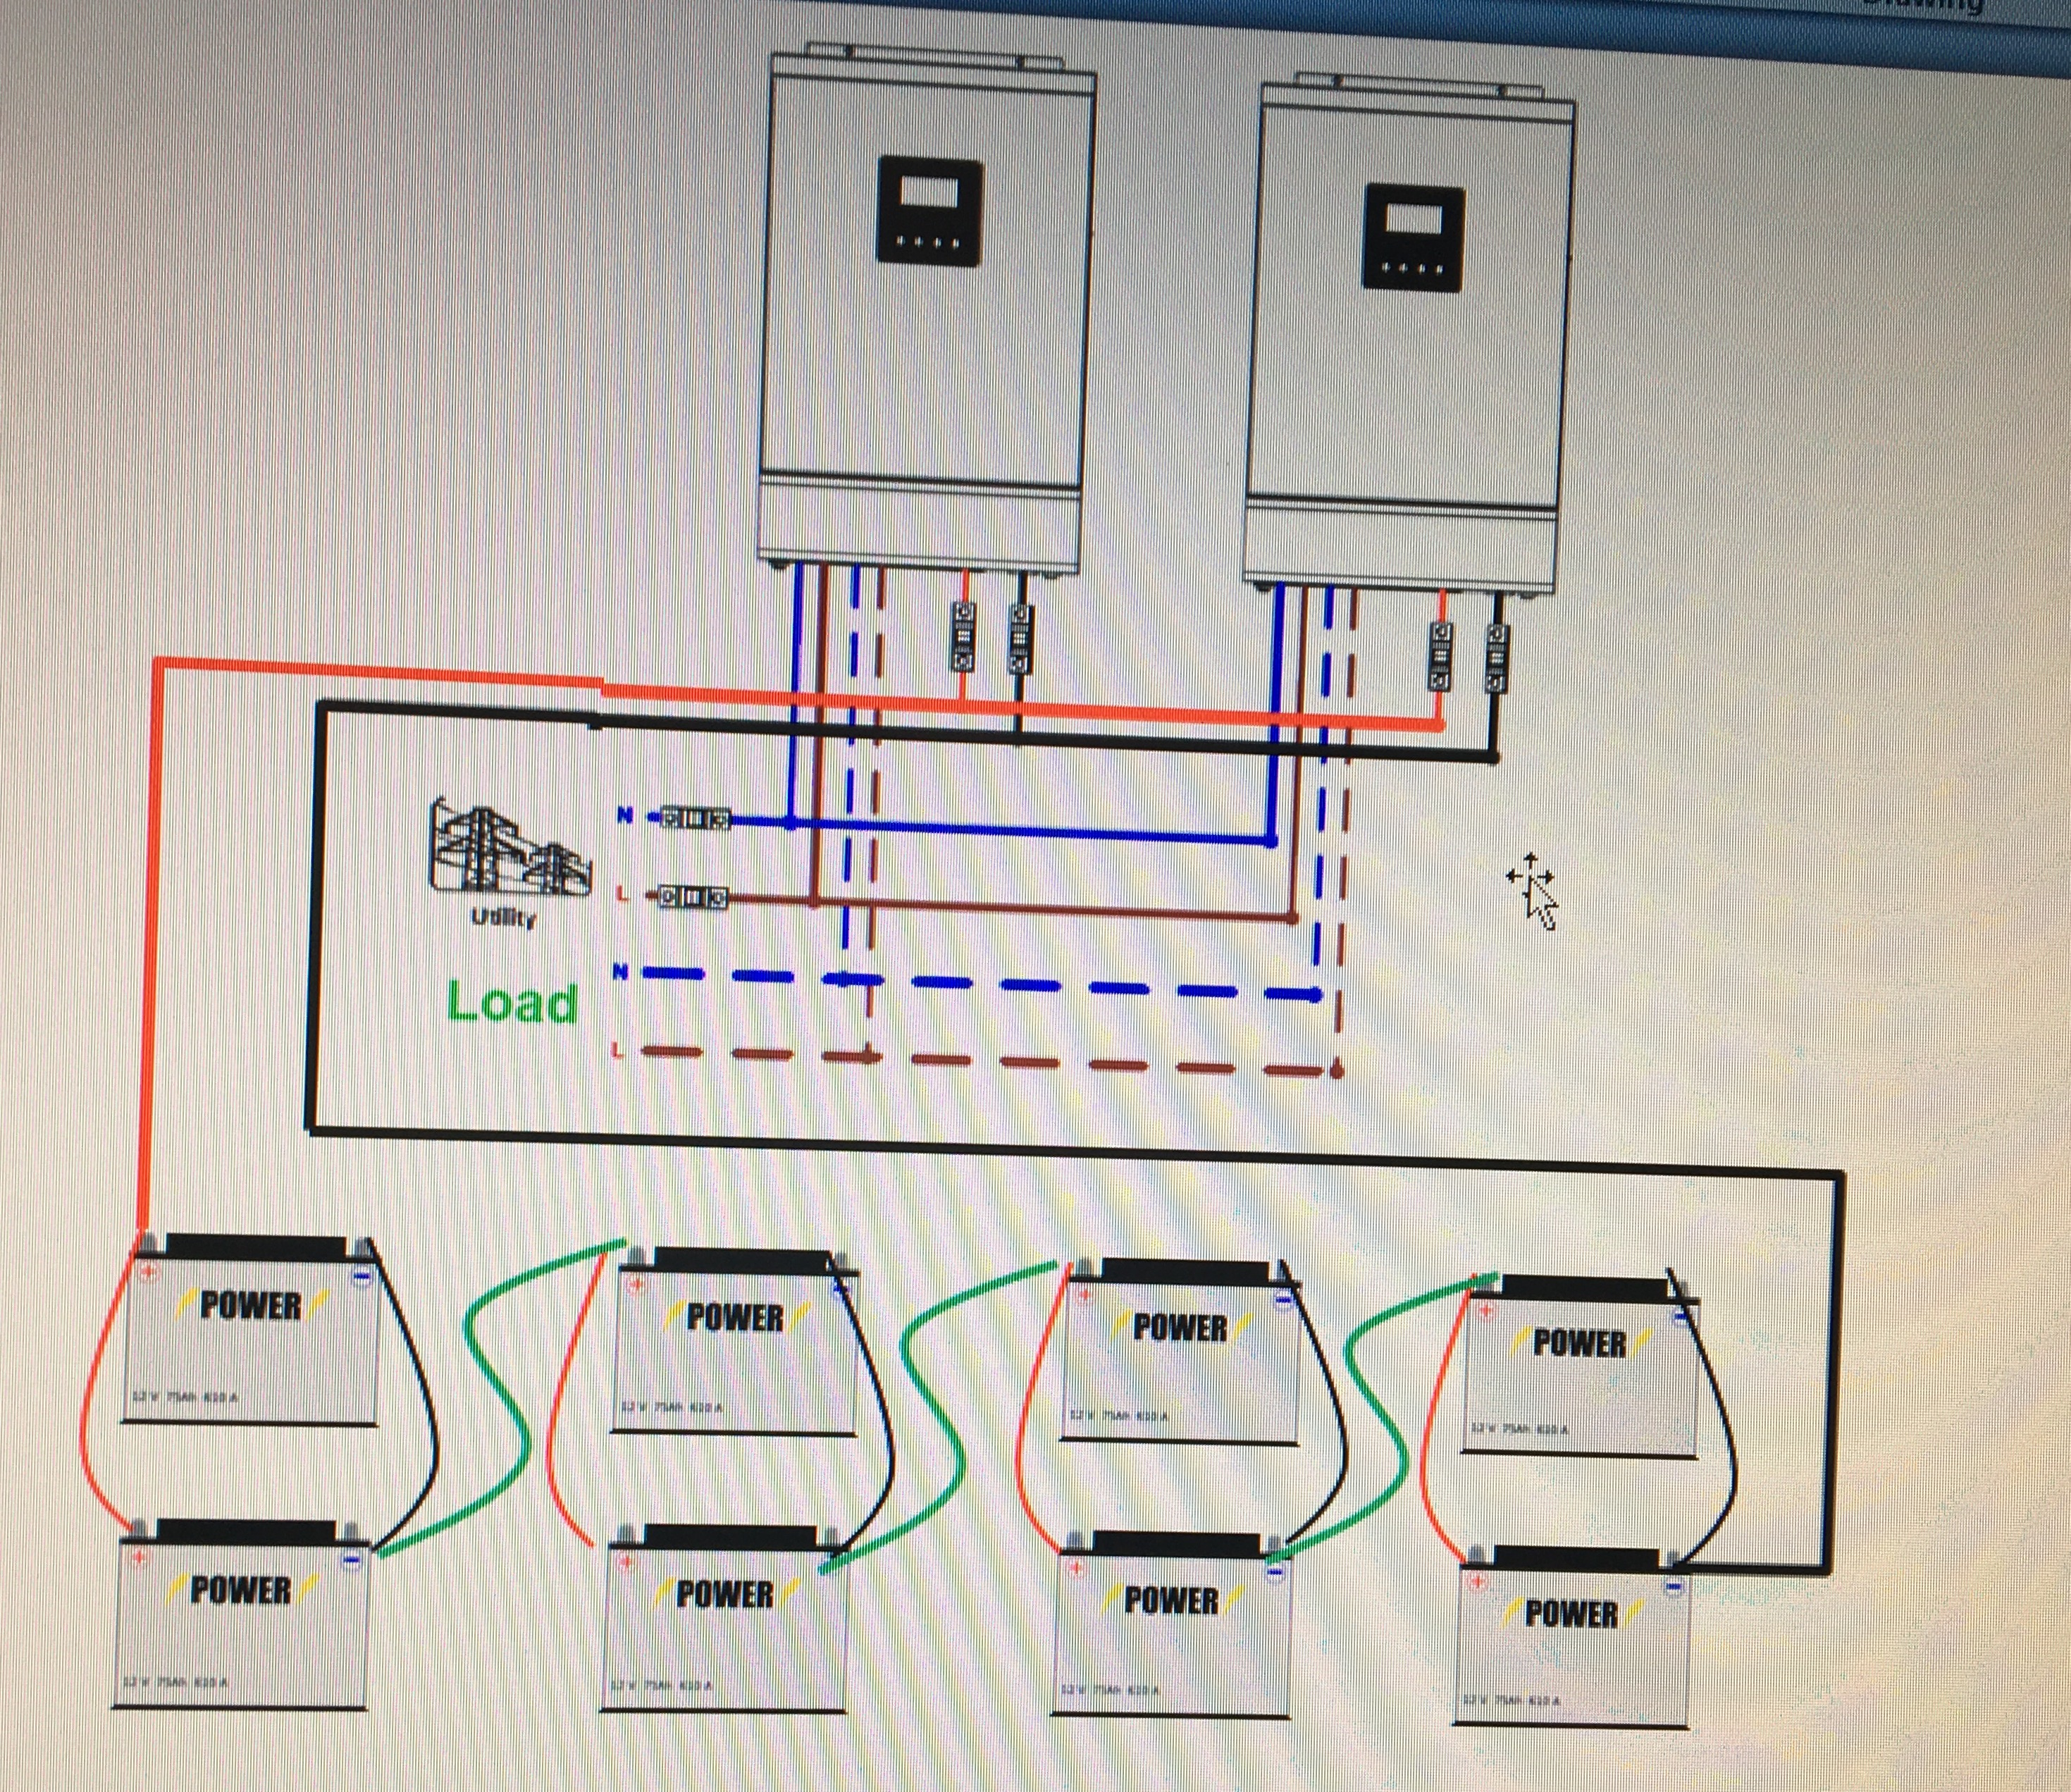 Correct Battery Setup For 2x 48v Banks Page 2 Solar Power Power Forum Renewable Energy Discussion